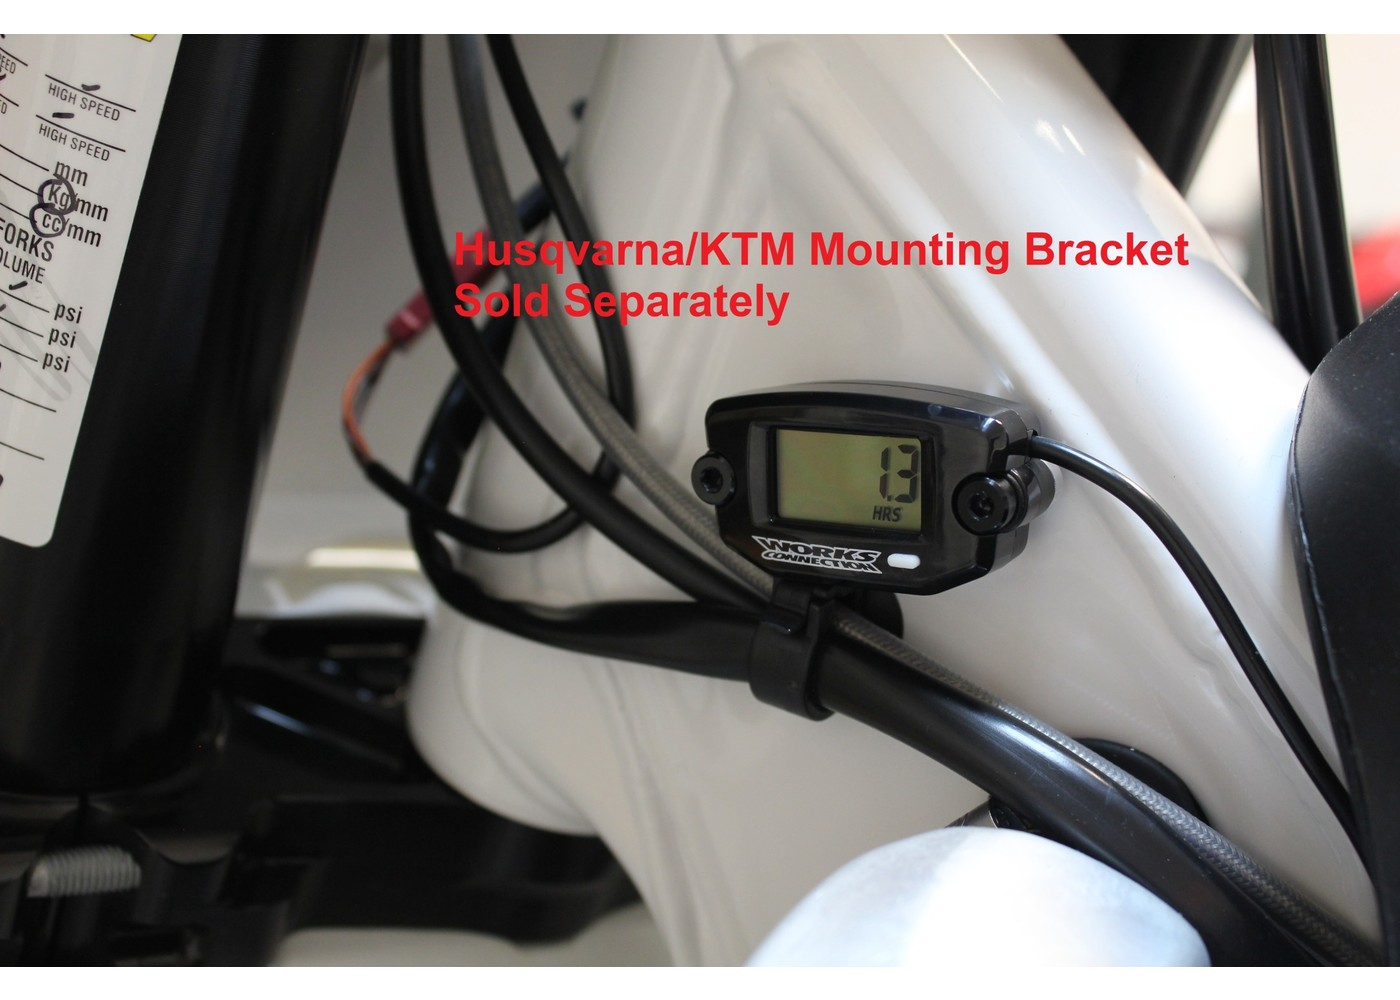 Tach/Hour Meters - worksconnection.com on wire harness connectors, wire harness assembly, wire harness repair, wire harness fasteners, wire harness testing, wire harness tubing,